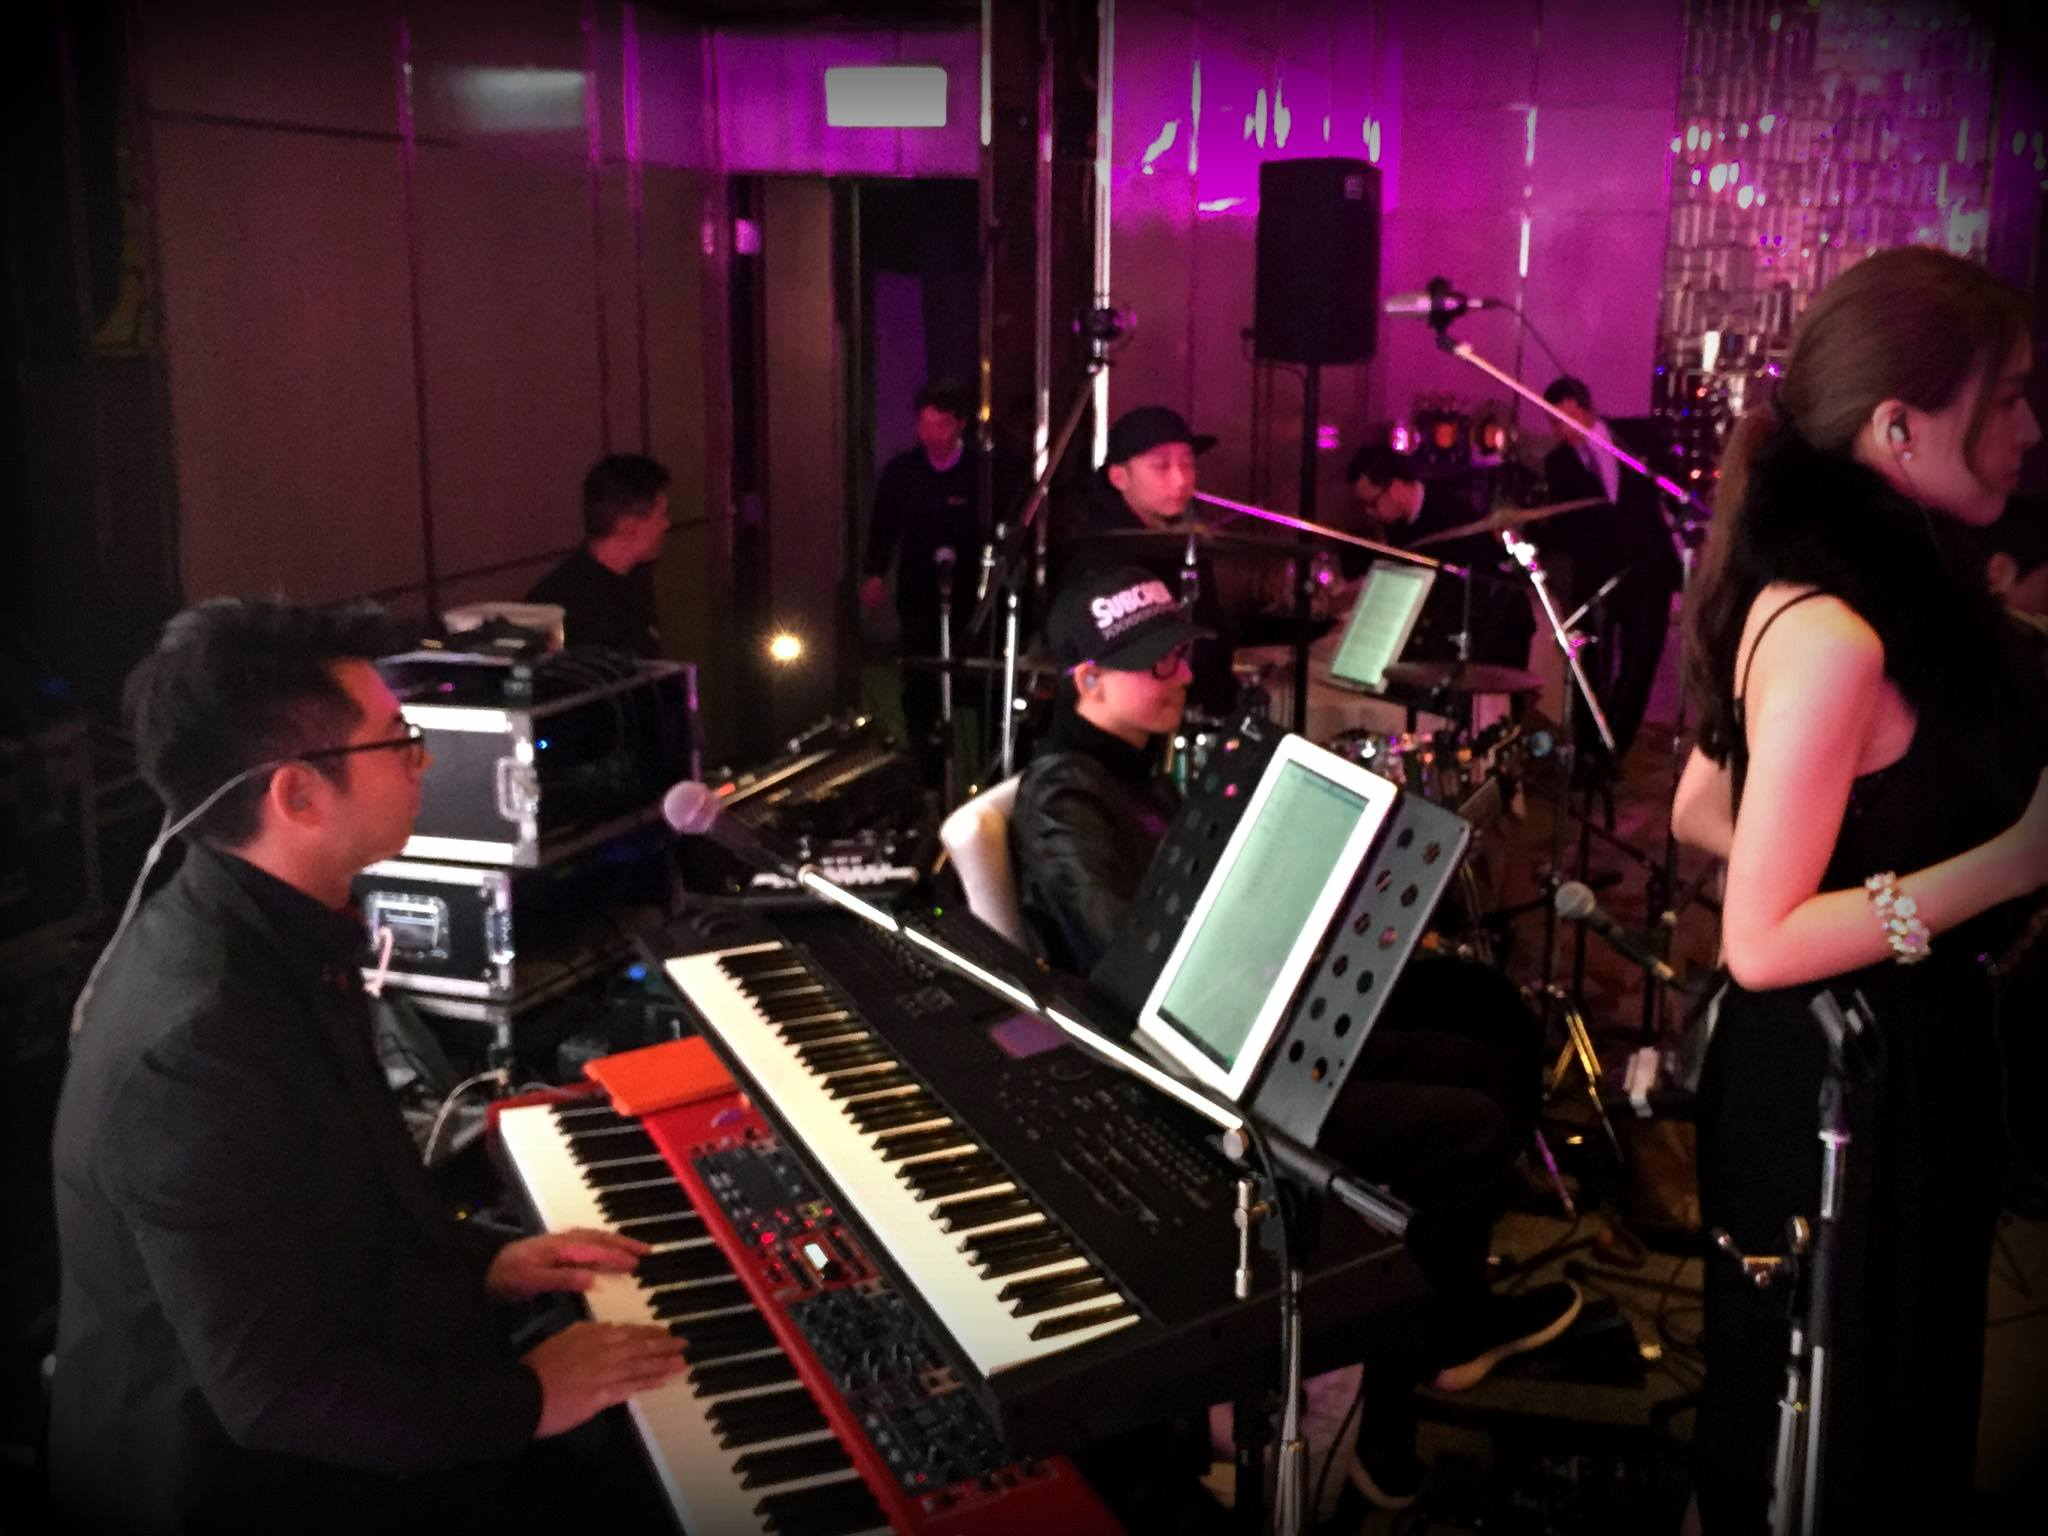 Unison Production Live Music band performance - Wedding in Ritz Carlton (Jan2016)